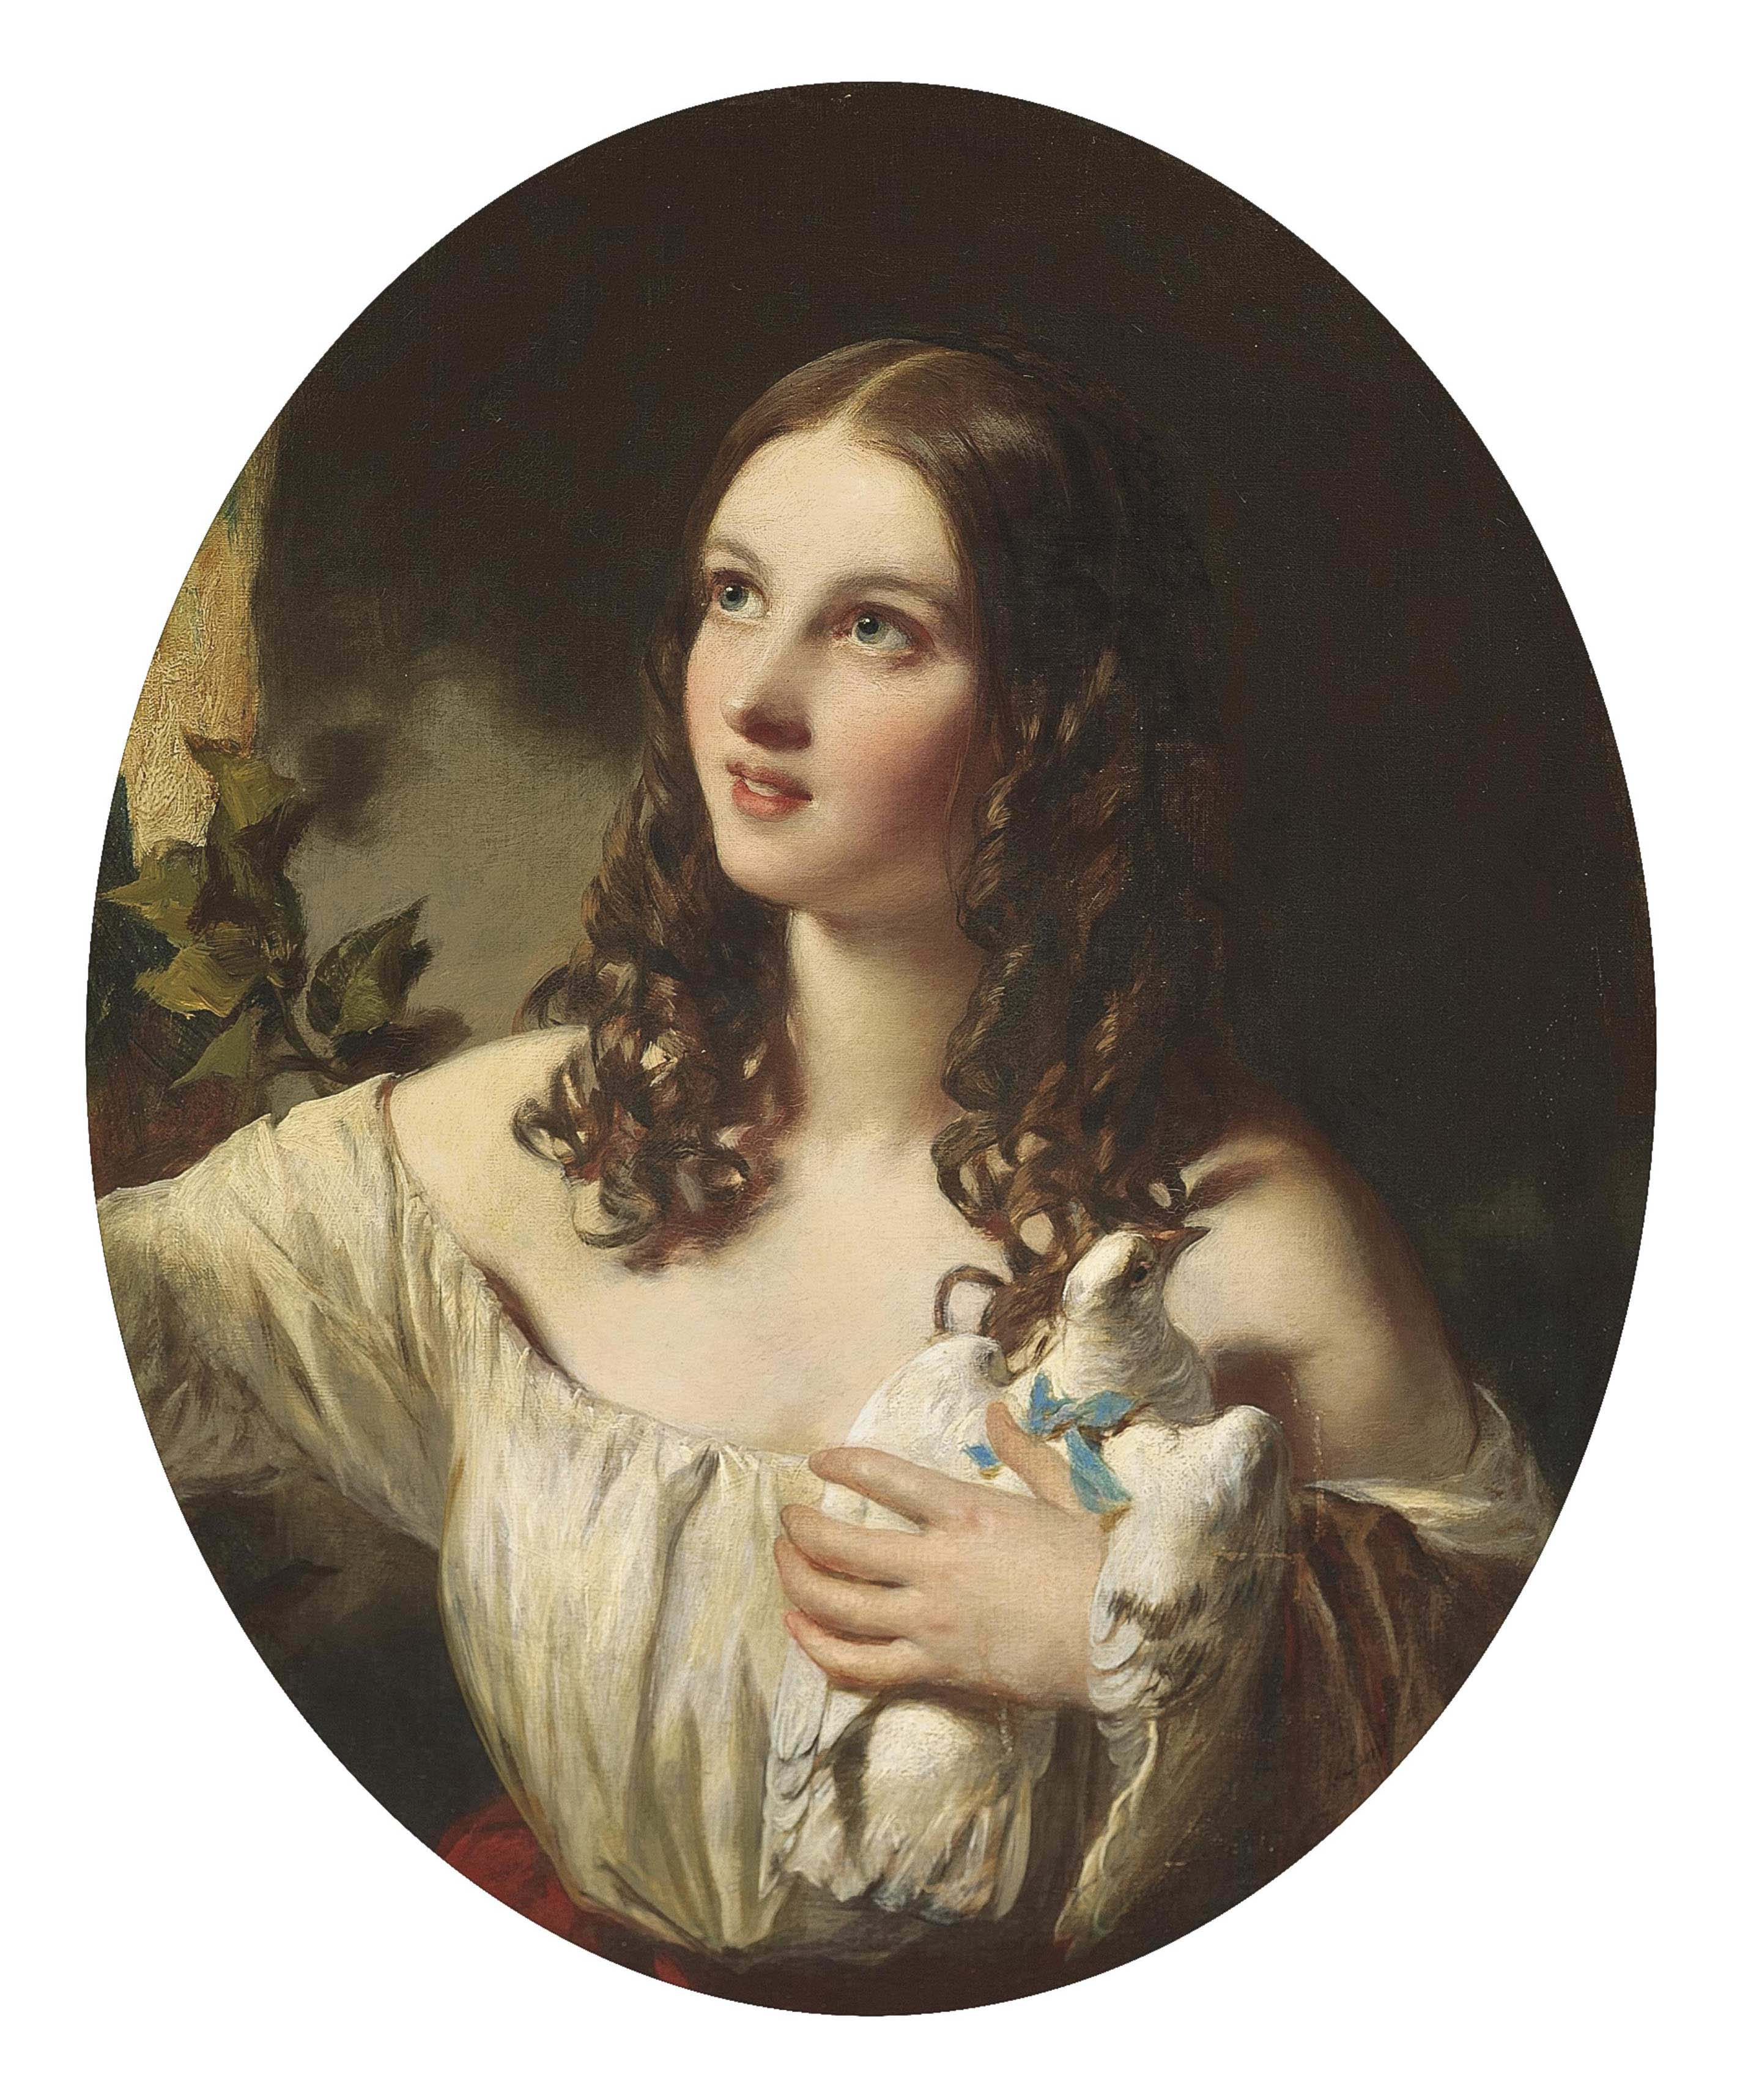 Portrait of a young girl, half-length, in a white muslin dress with a red sash, holding a dove